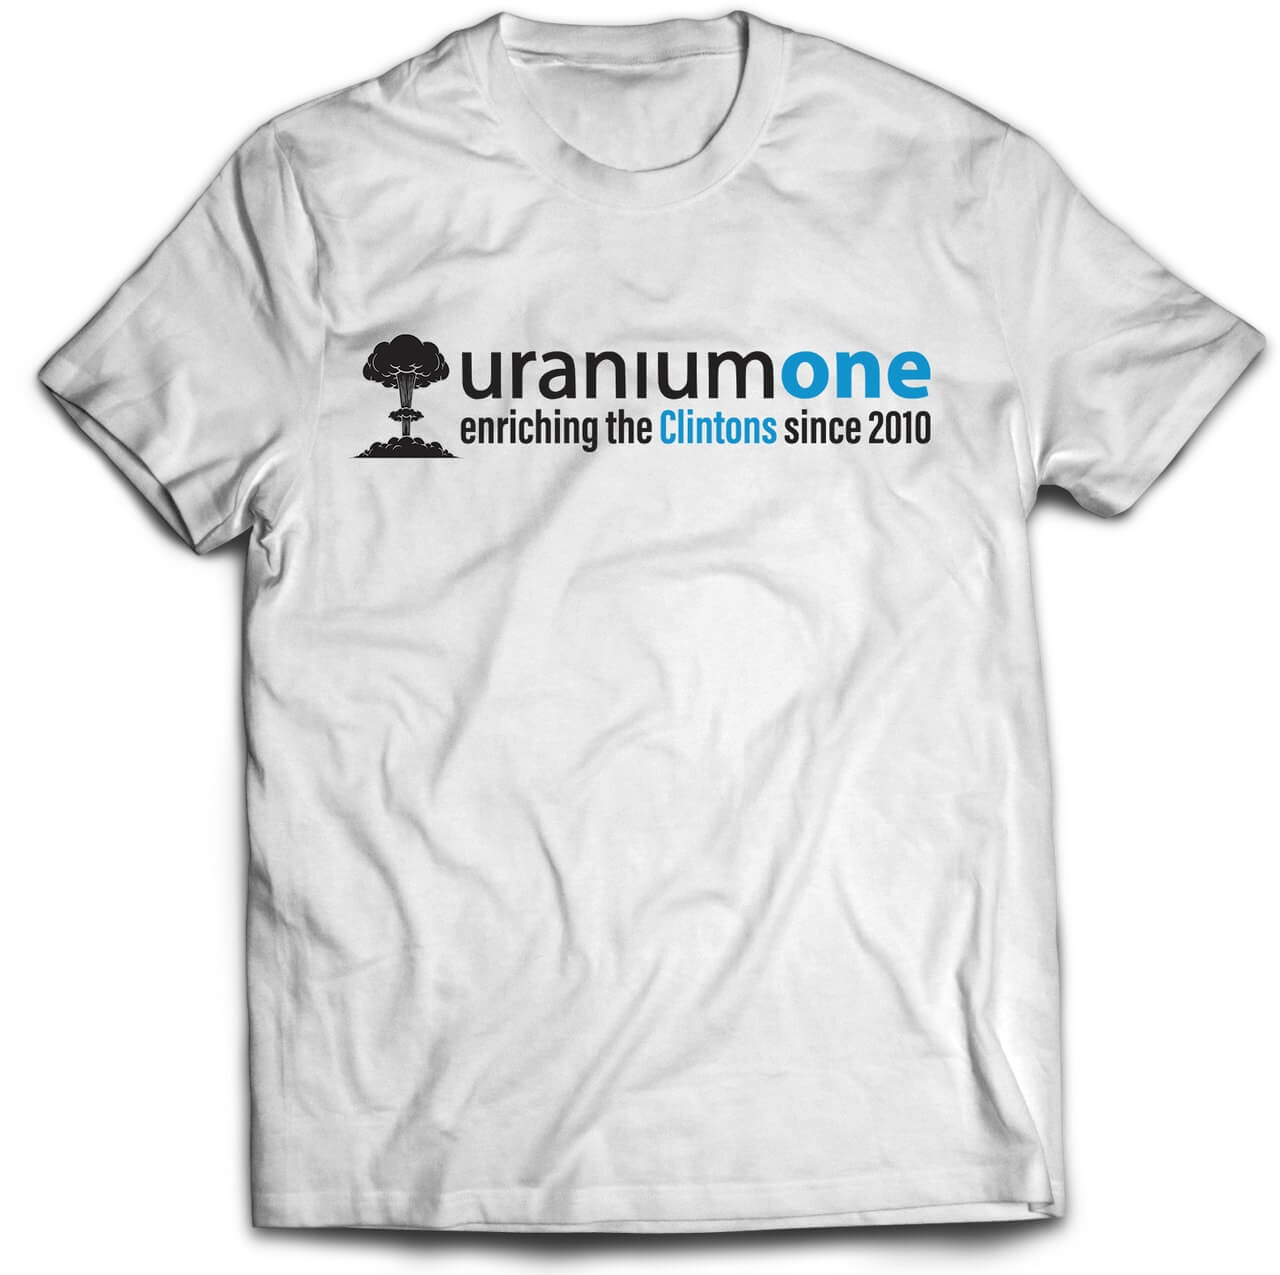 Uranium One T-Shirt